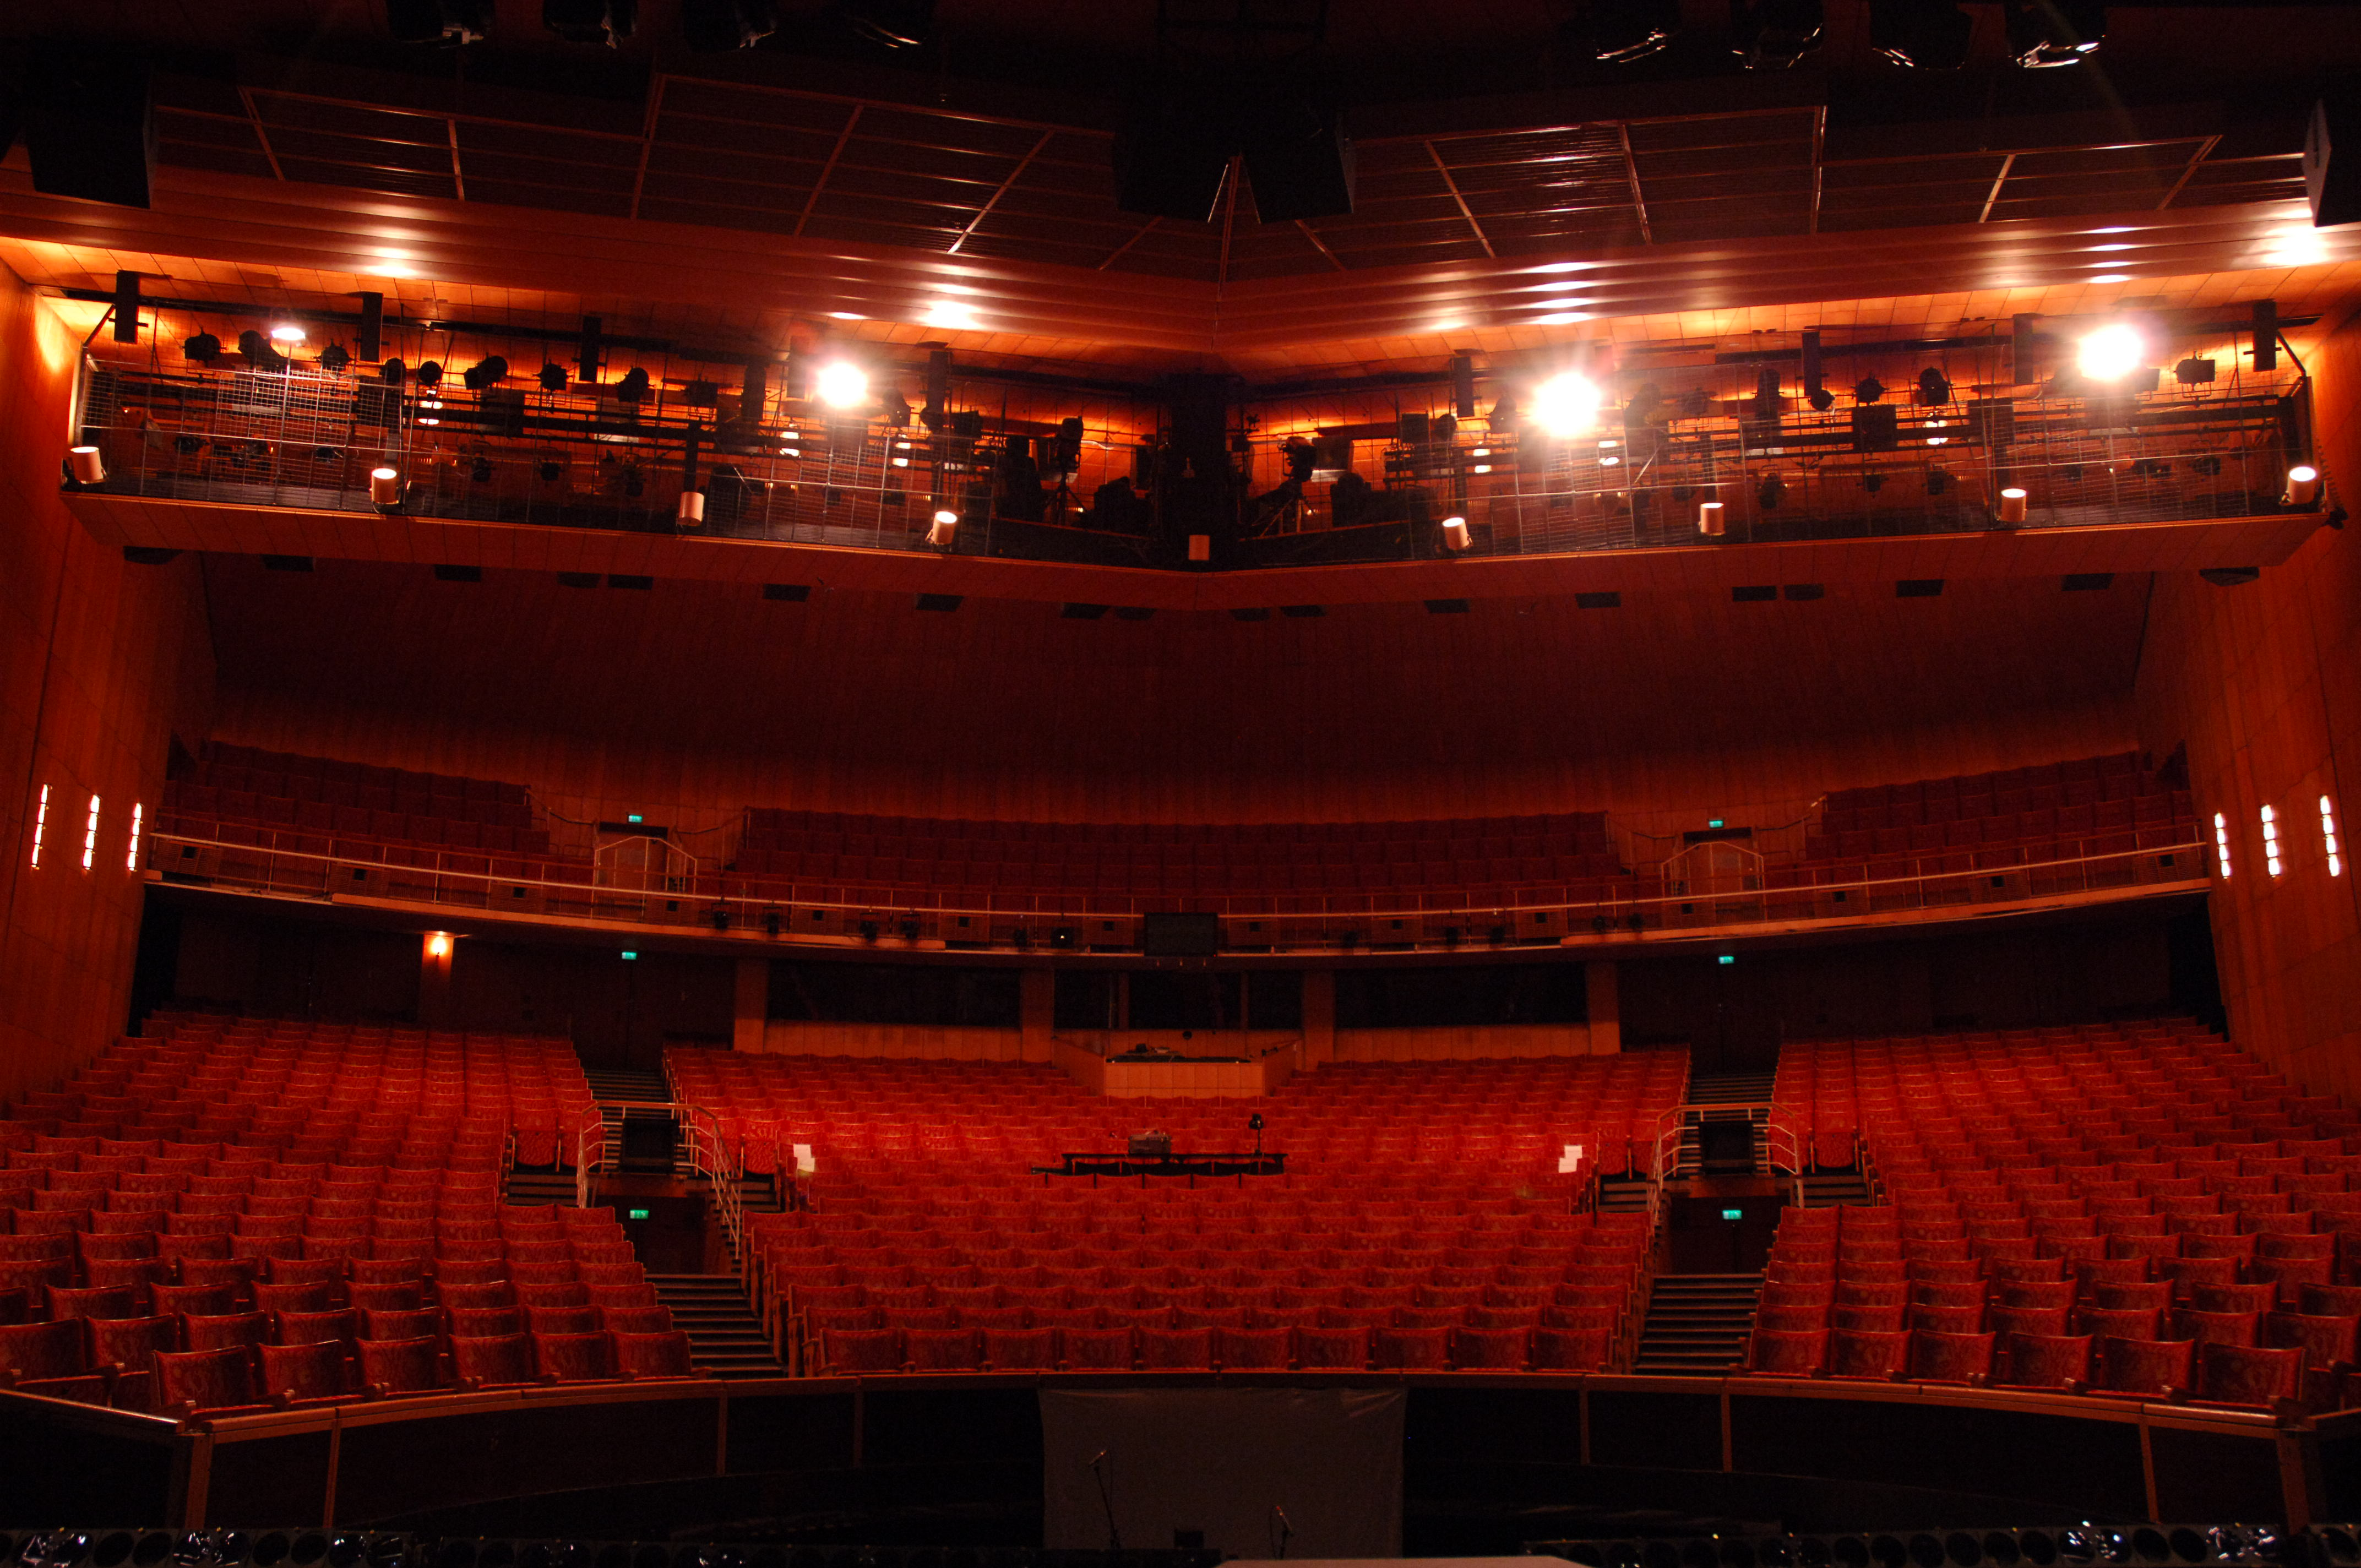 The auditorium as seen from the stage